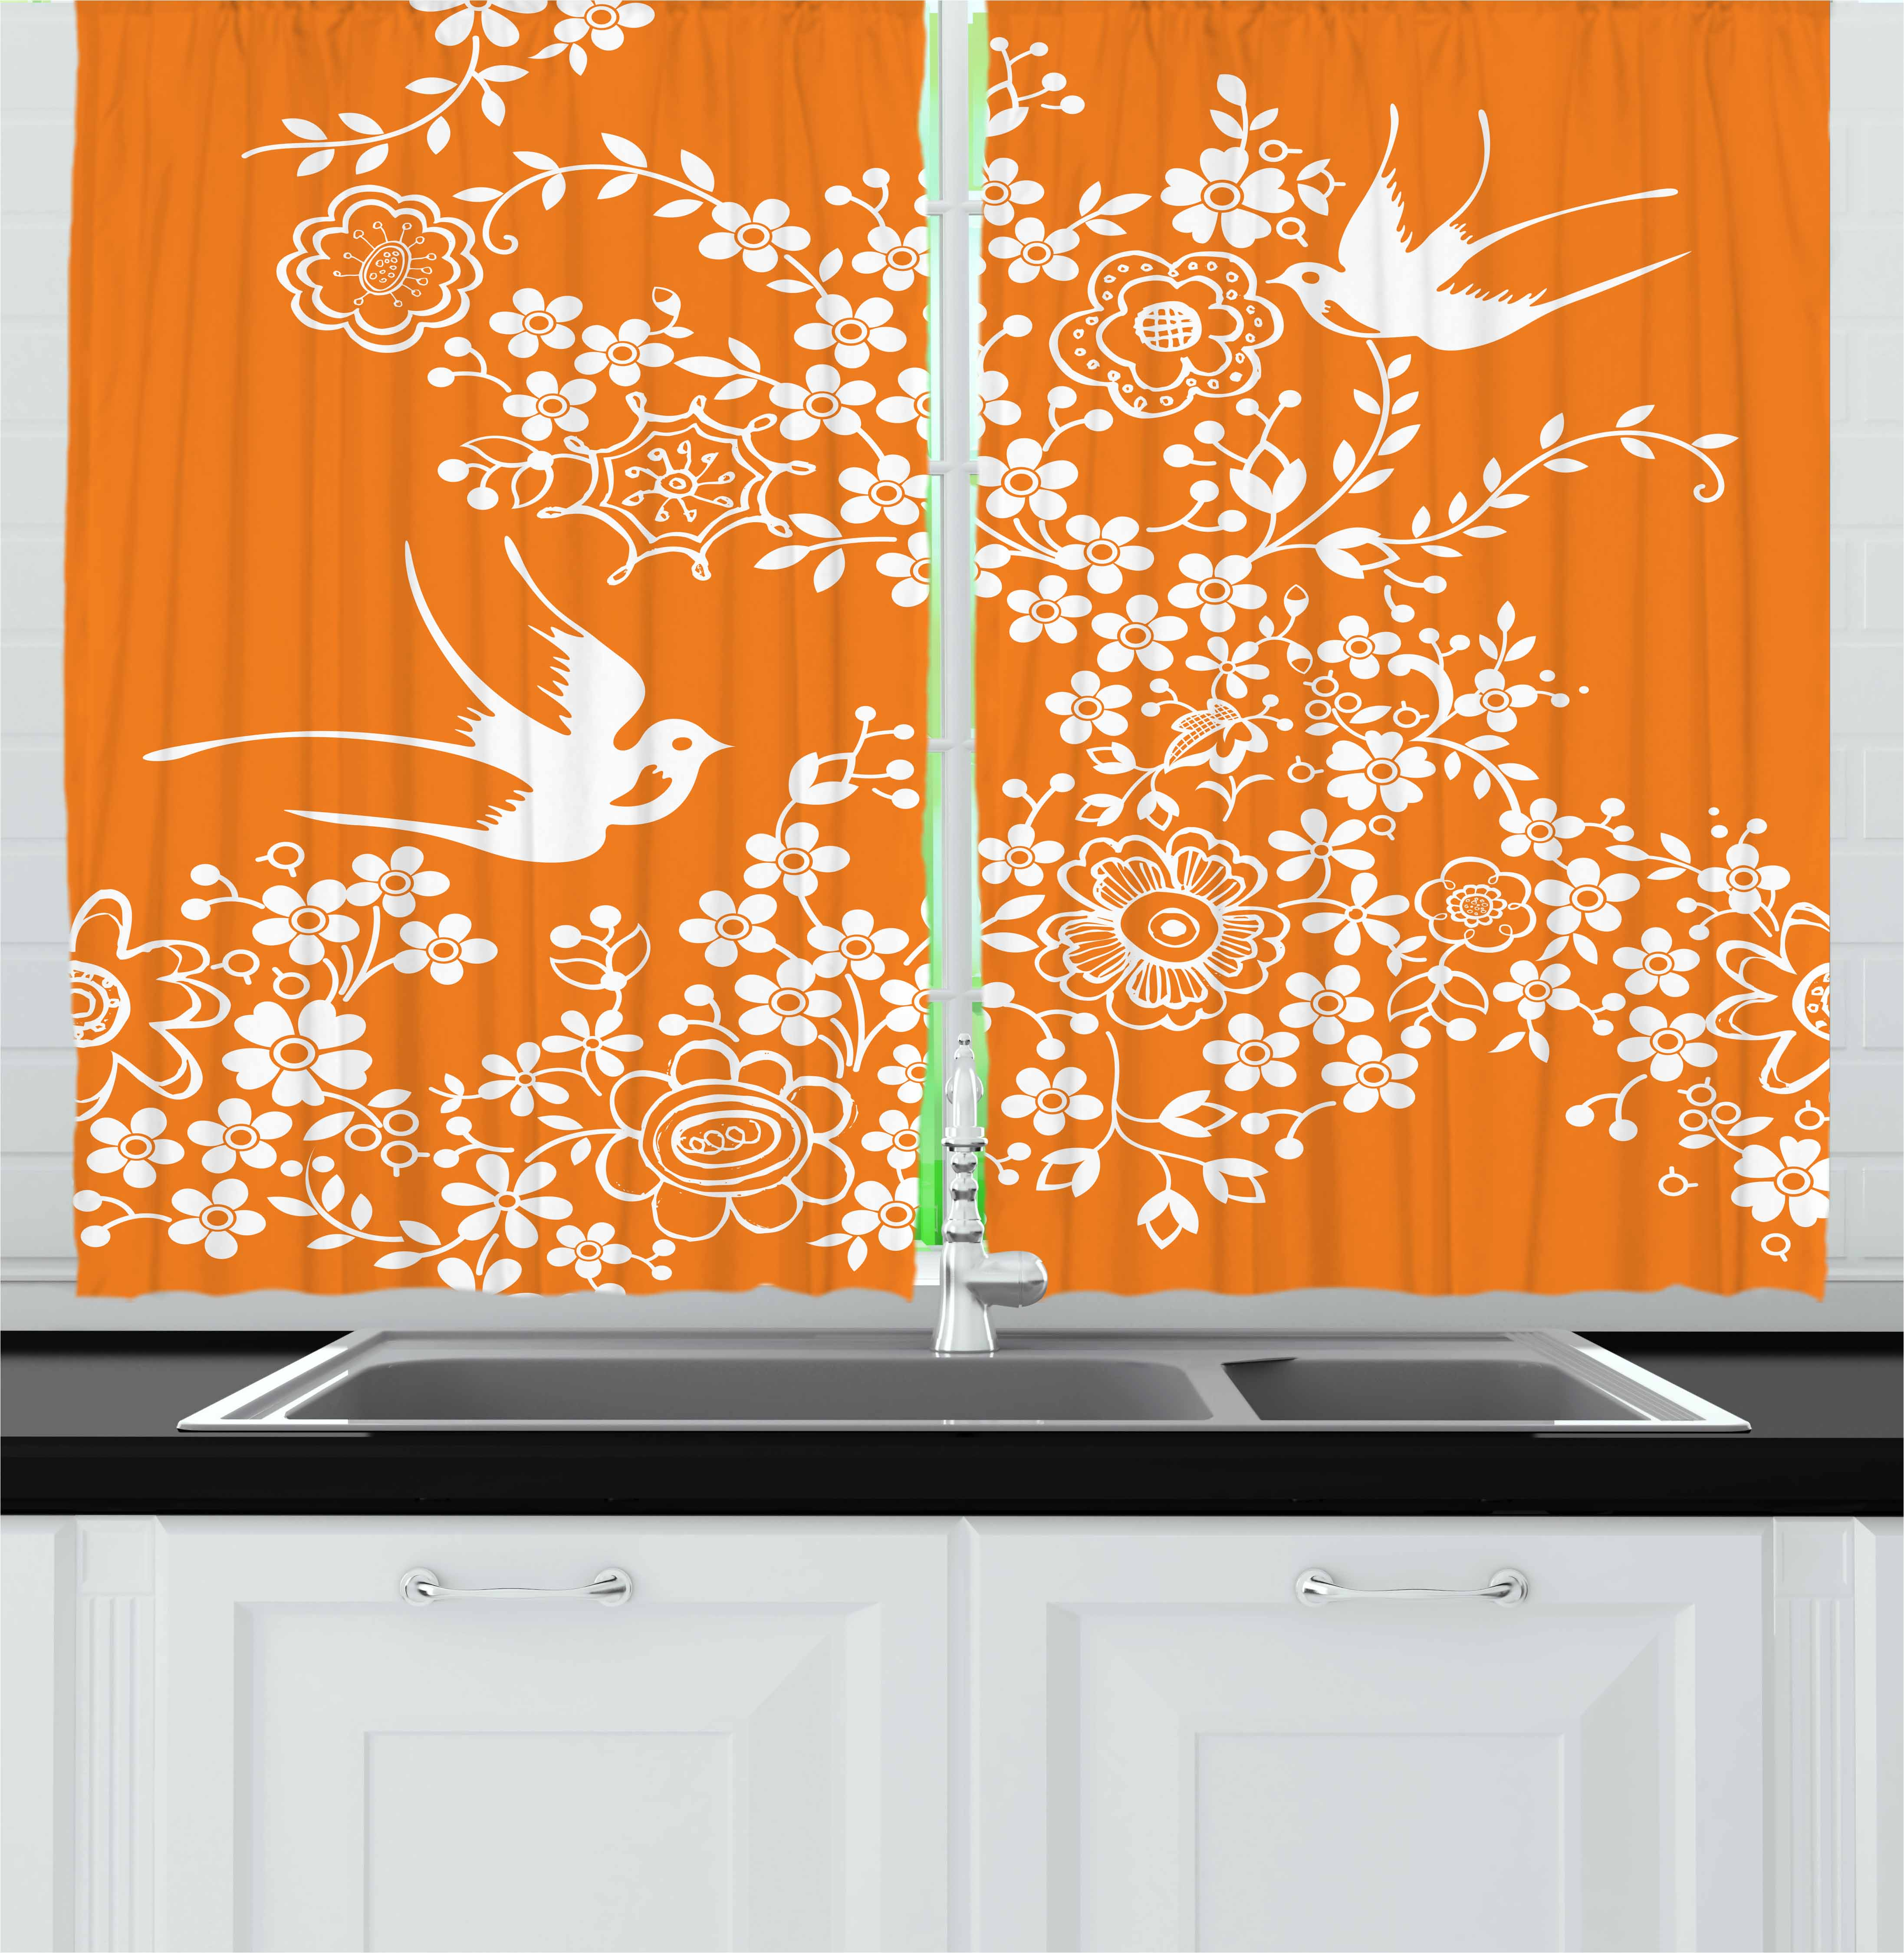 Superbe Orange And White Curtains 2 Panels Set, Asian Flora And Fauna Doodle Style  Bird Silhouettes And ...